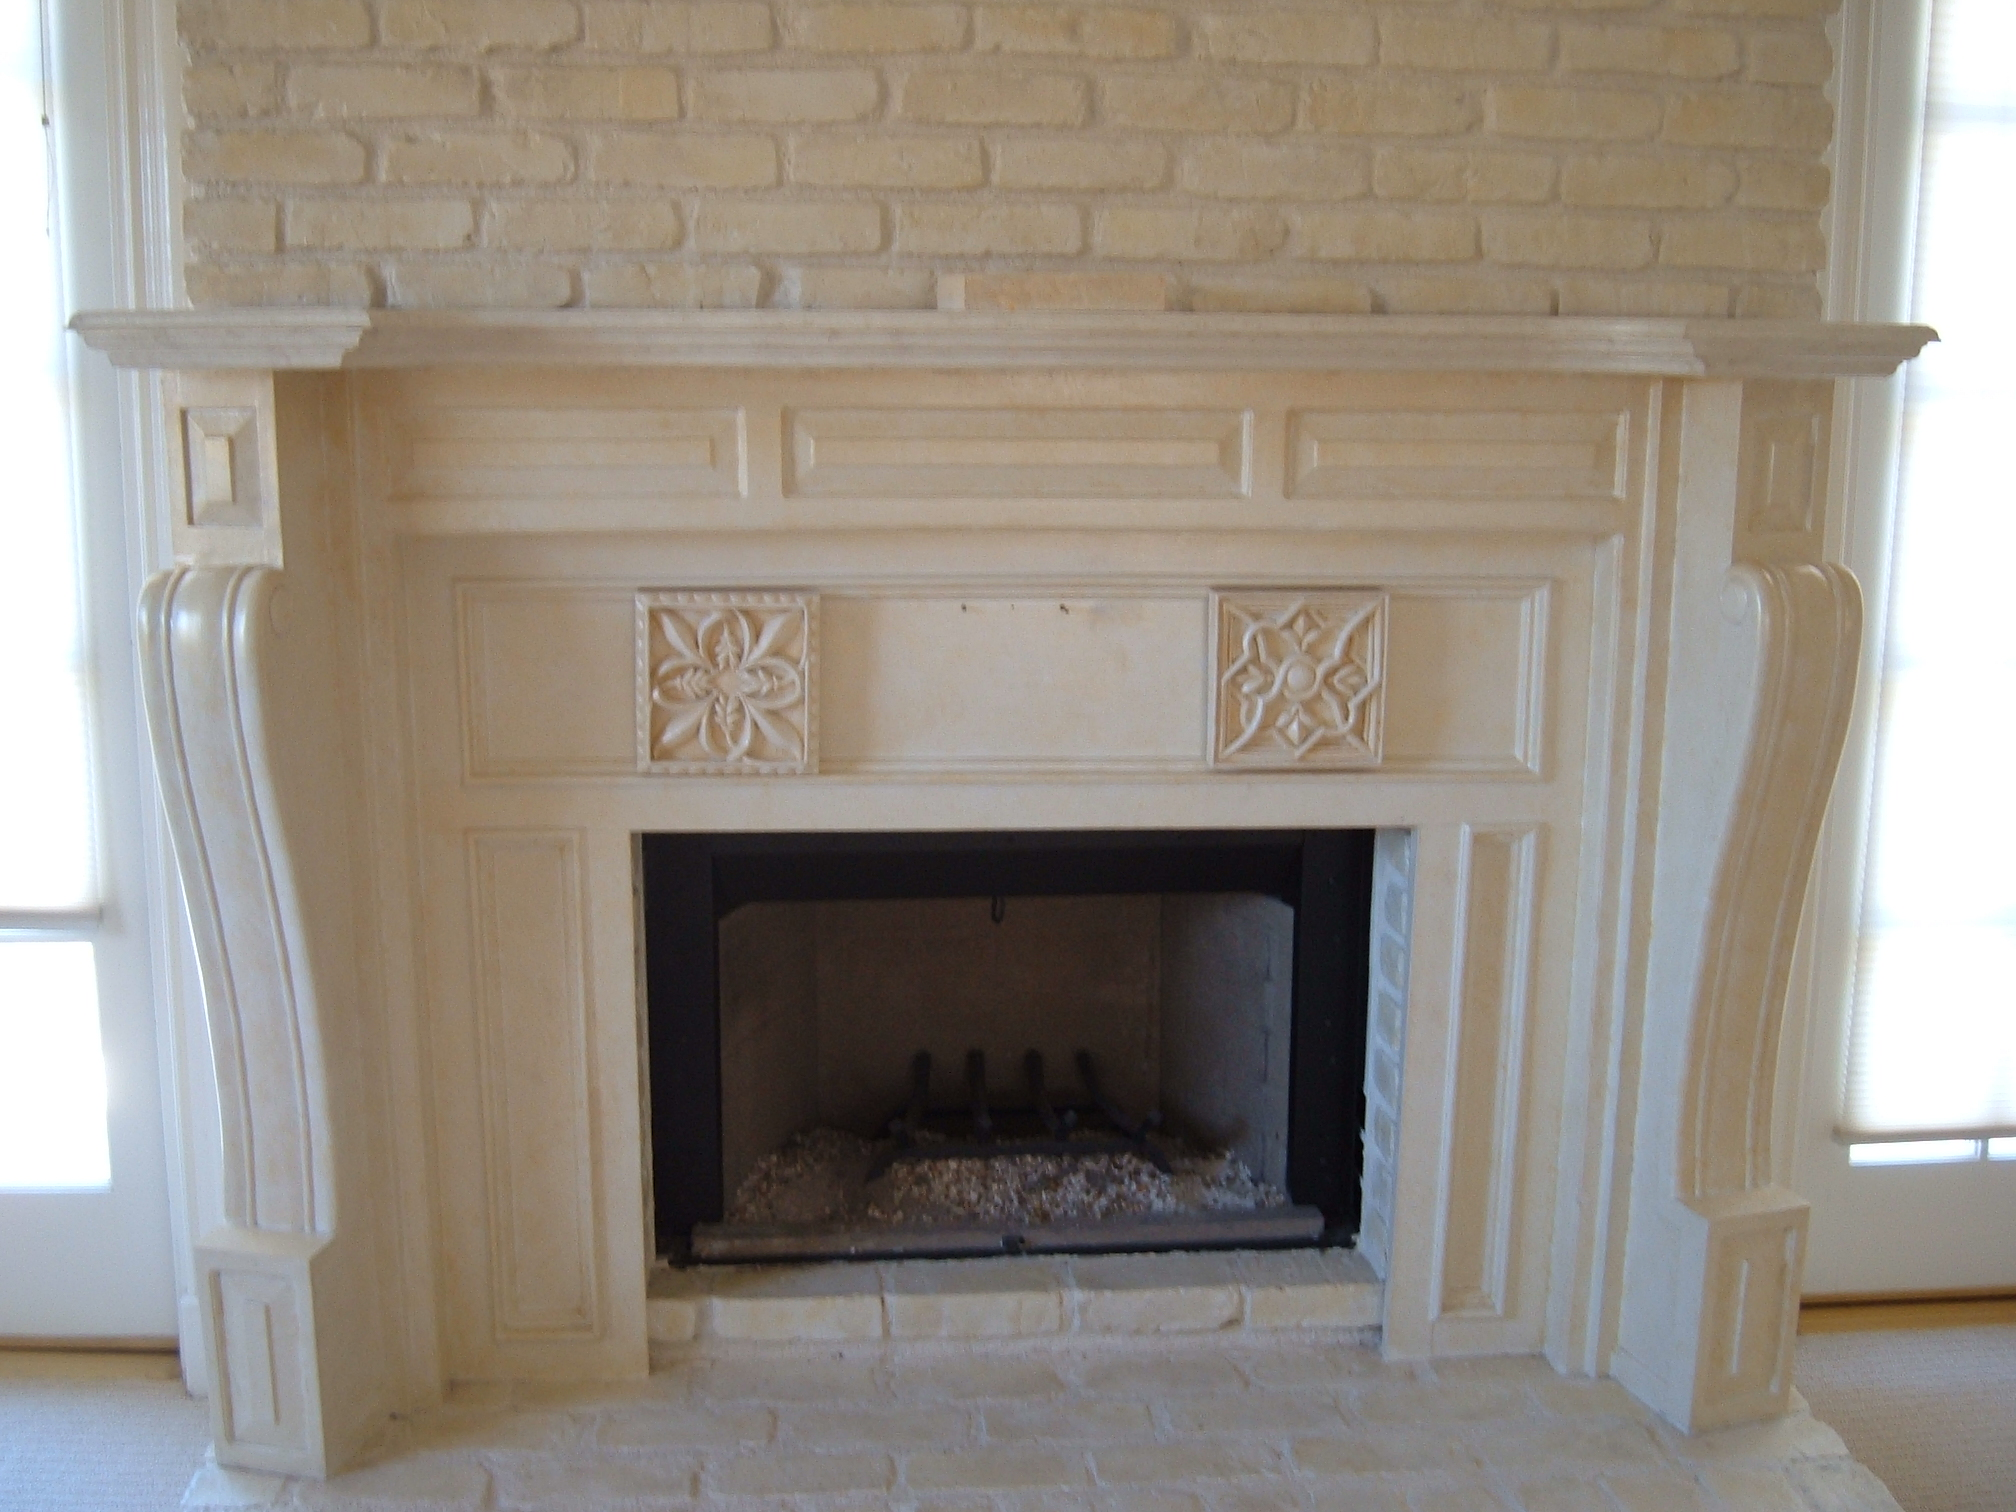 georgia_s_fireplace_before.jpg